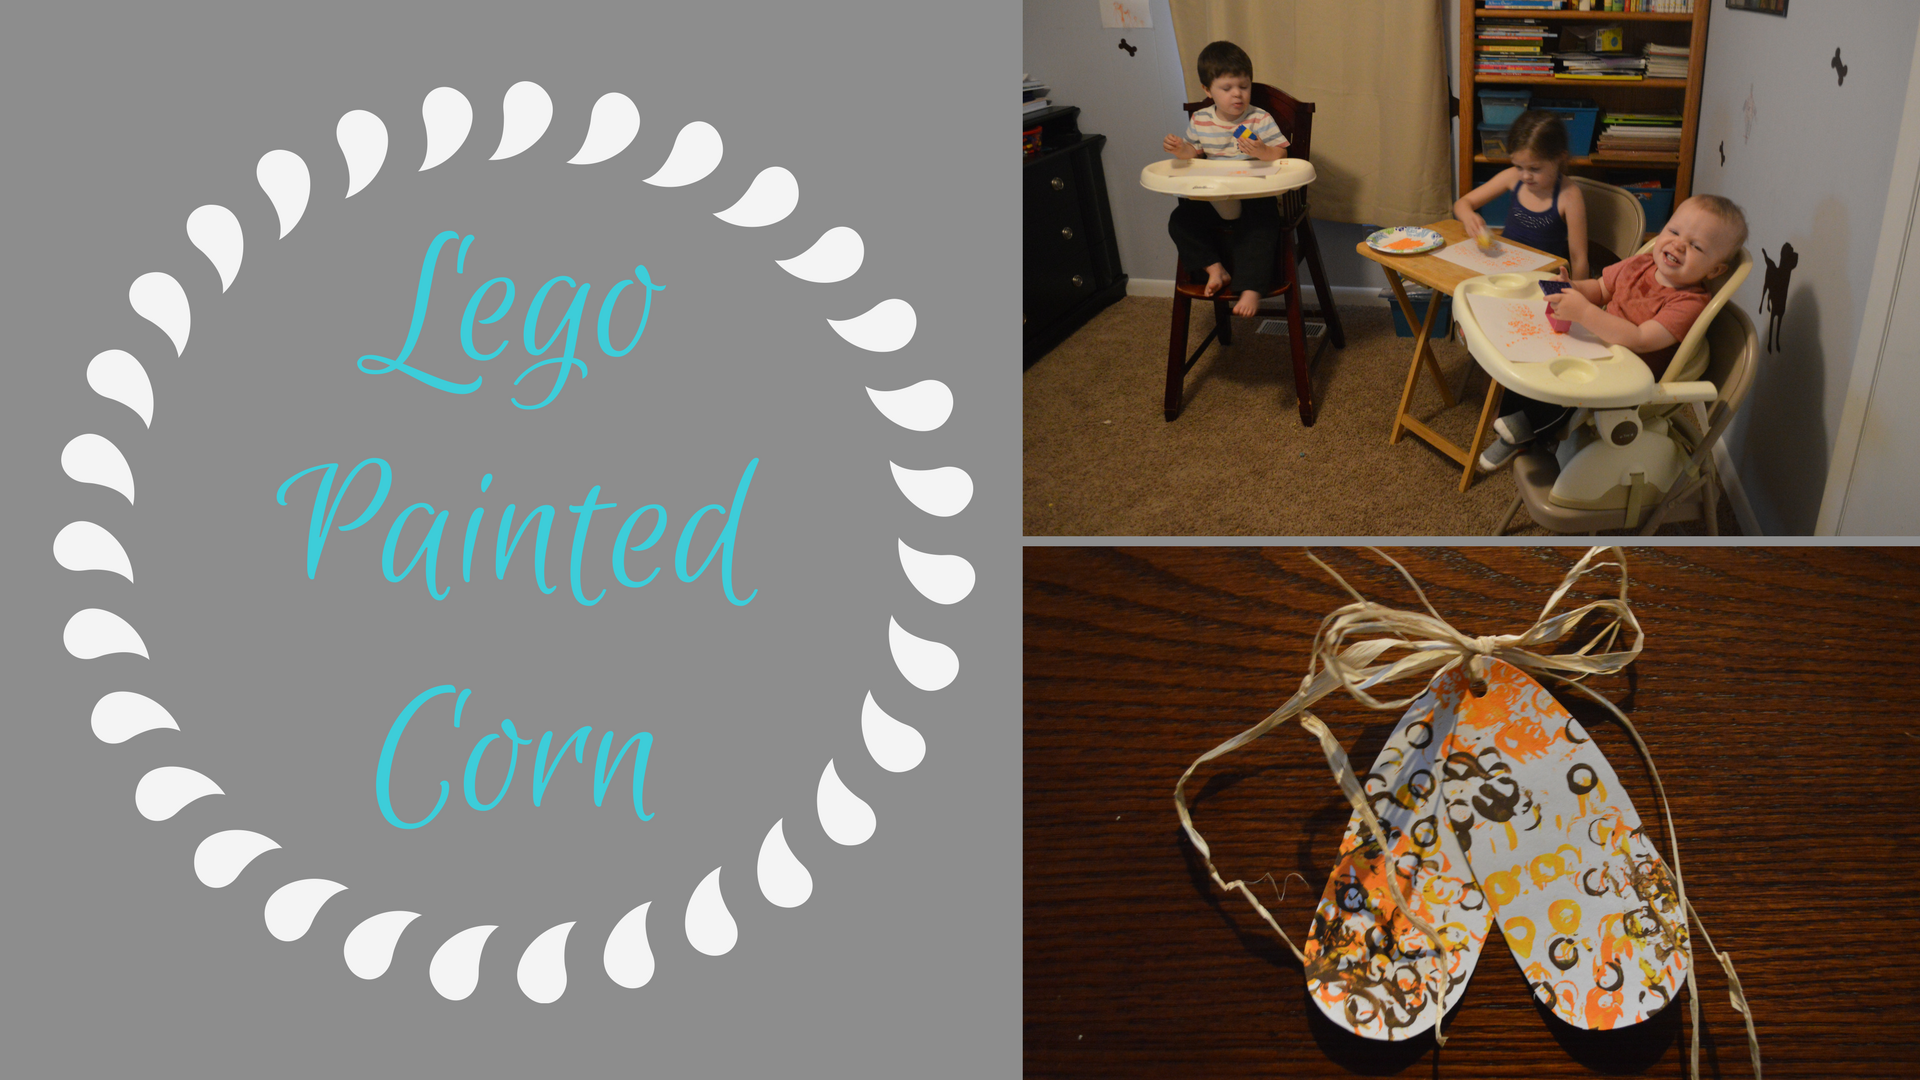 Lego Painted Corn - A fun and easy fall craft that your kids will love and will make a great decoration.